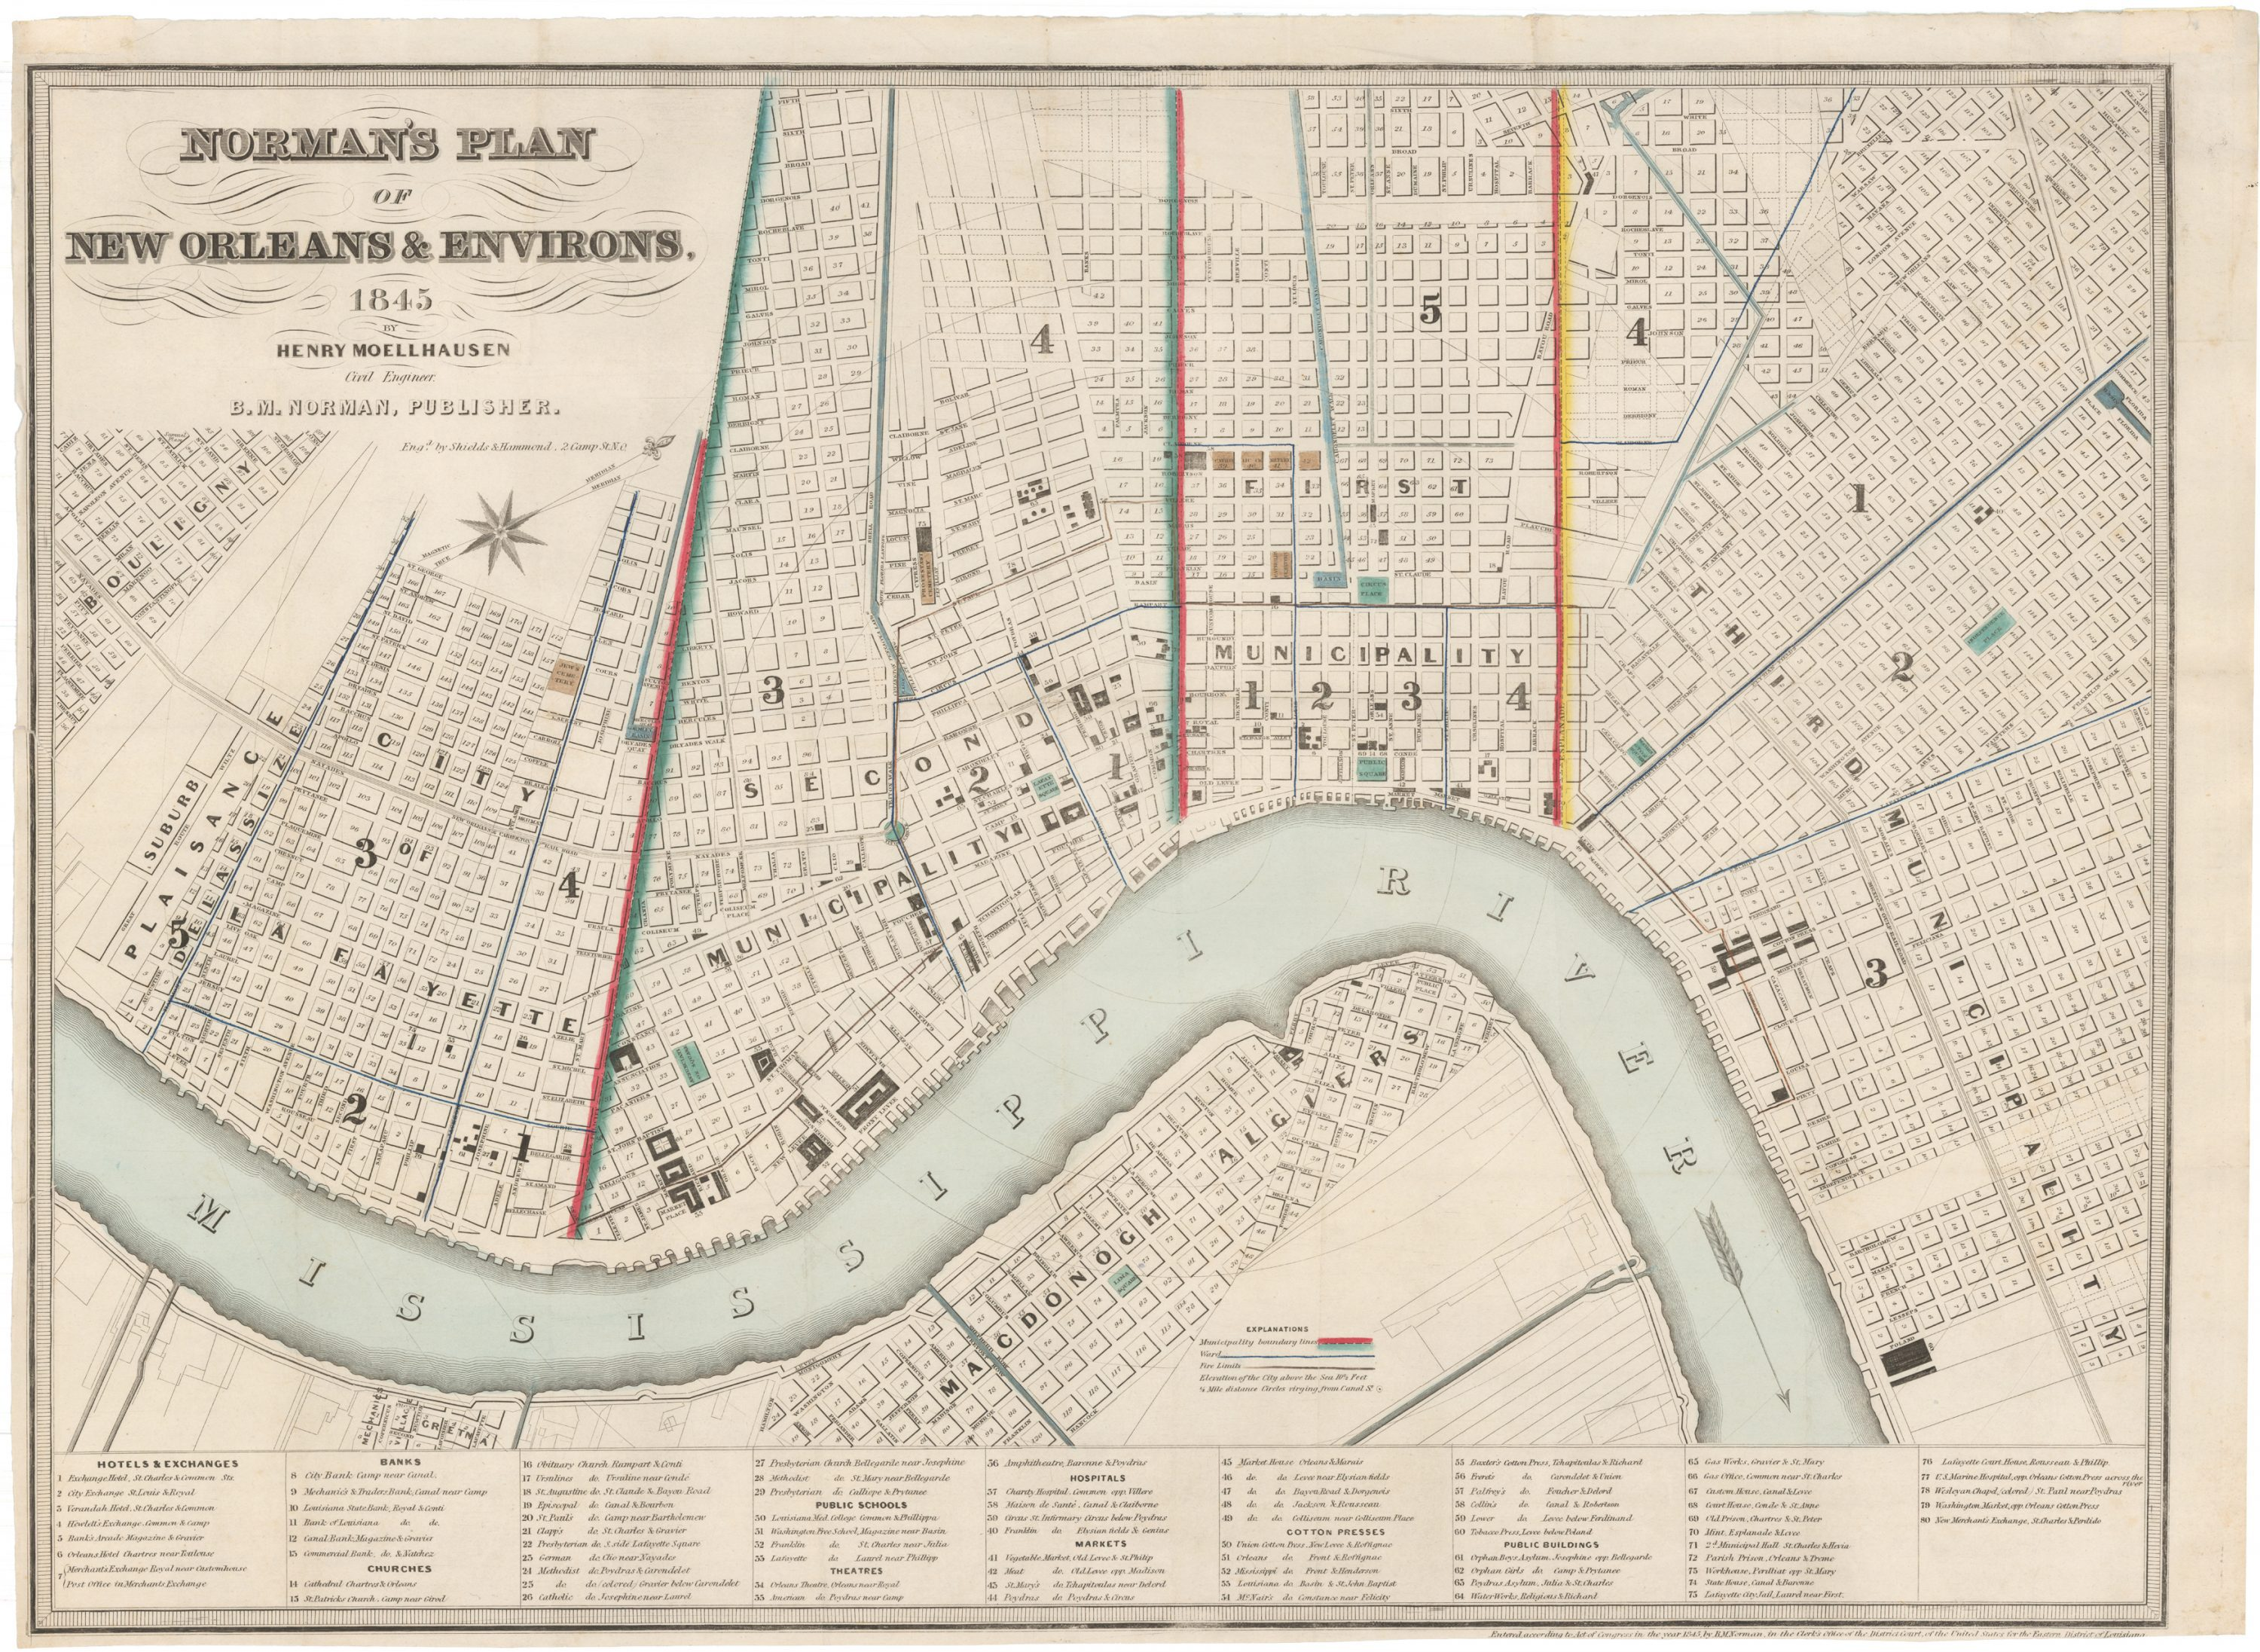 Louisiana New Orleans Map.A Rare And Important Plan Of New Orleans By Henry Moellhausen Rare